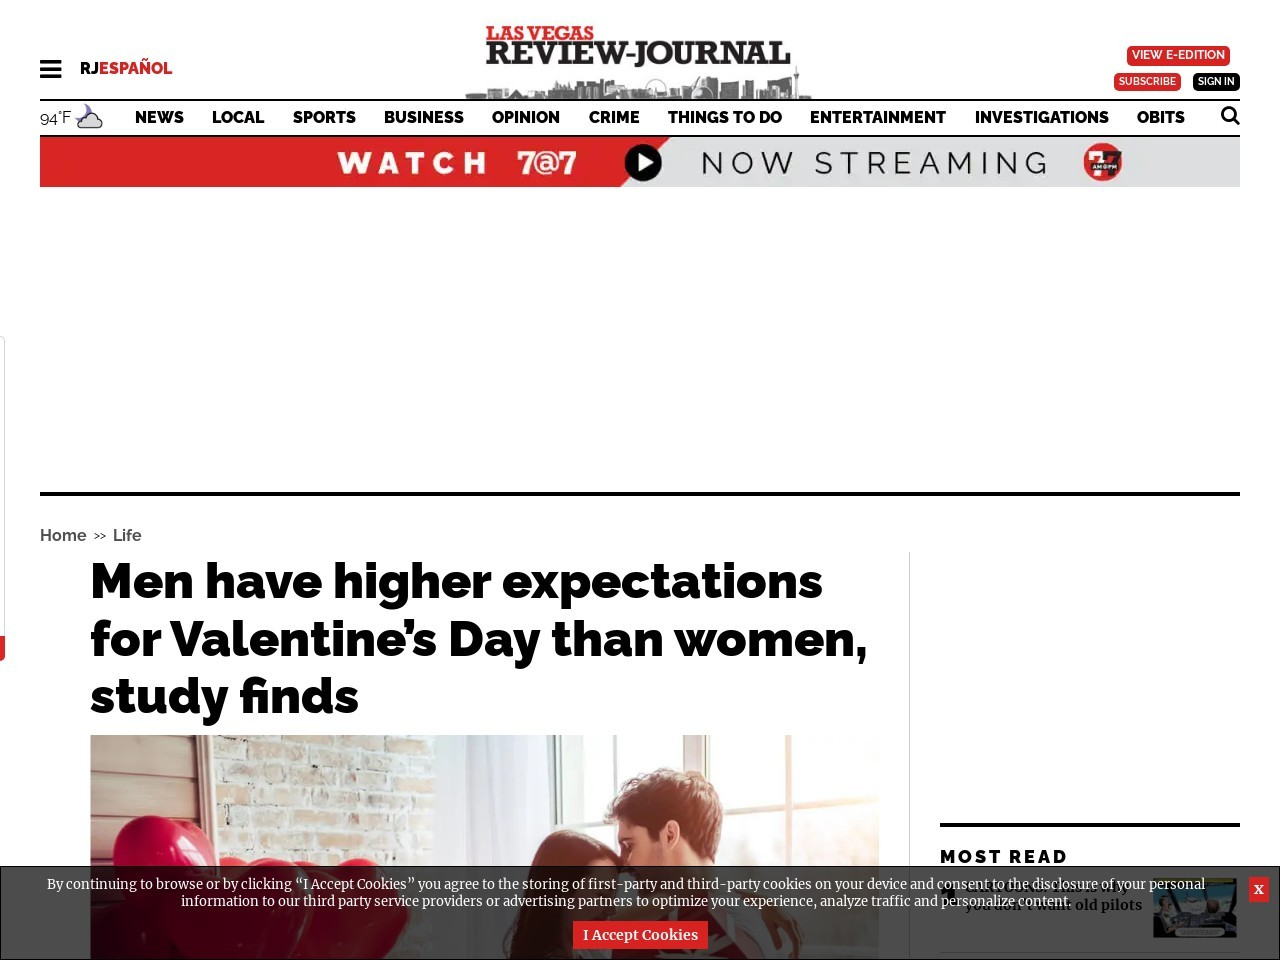 Men have higher expectations for Valentine's Day than women, study finds